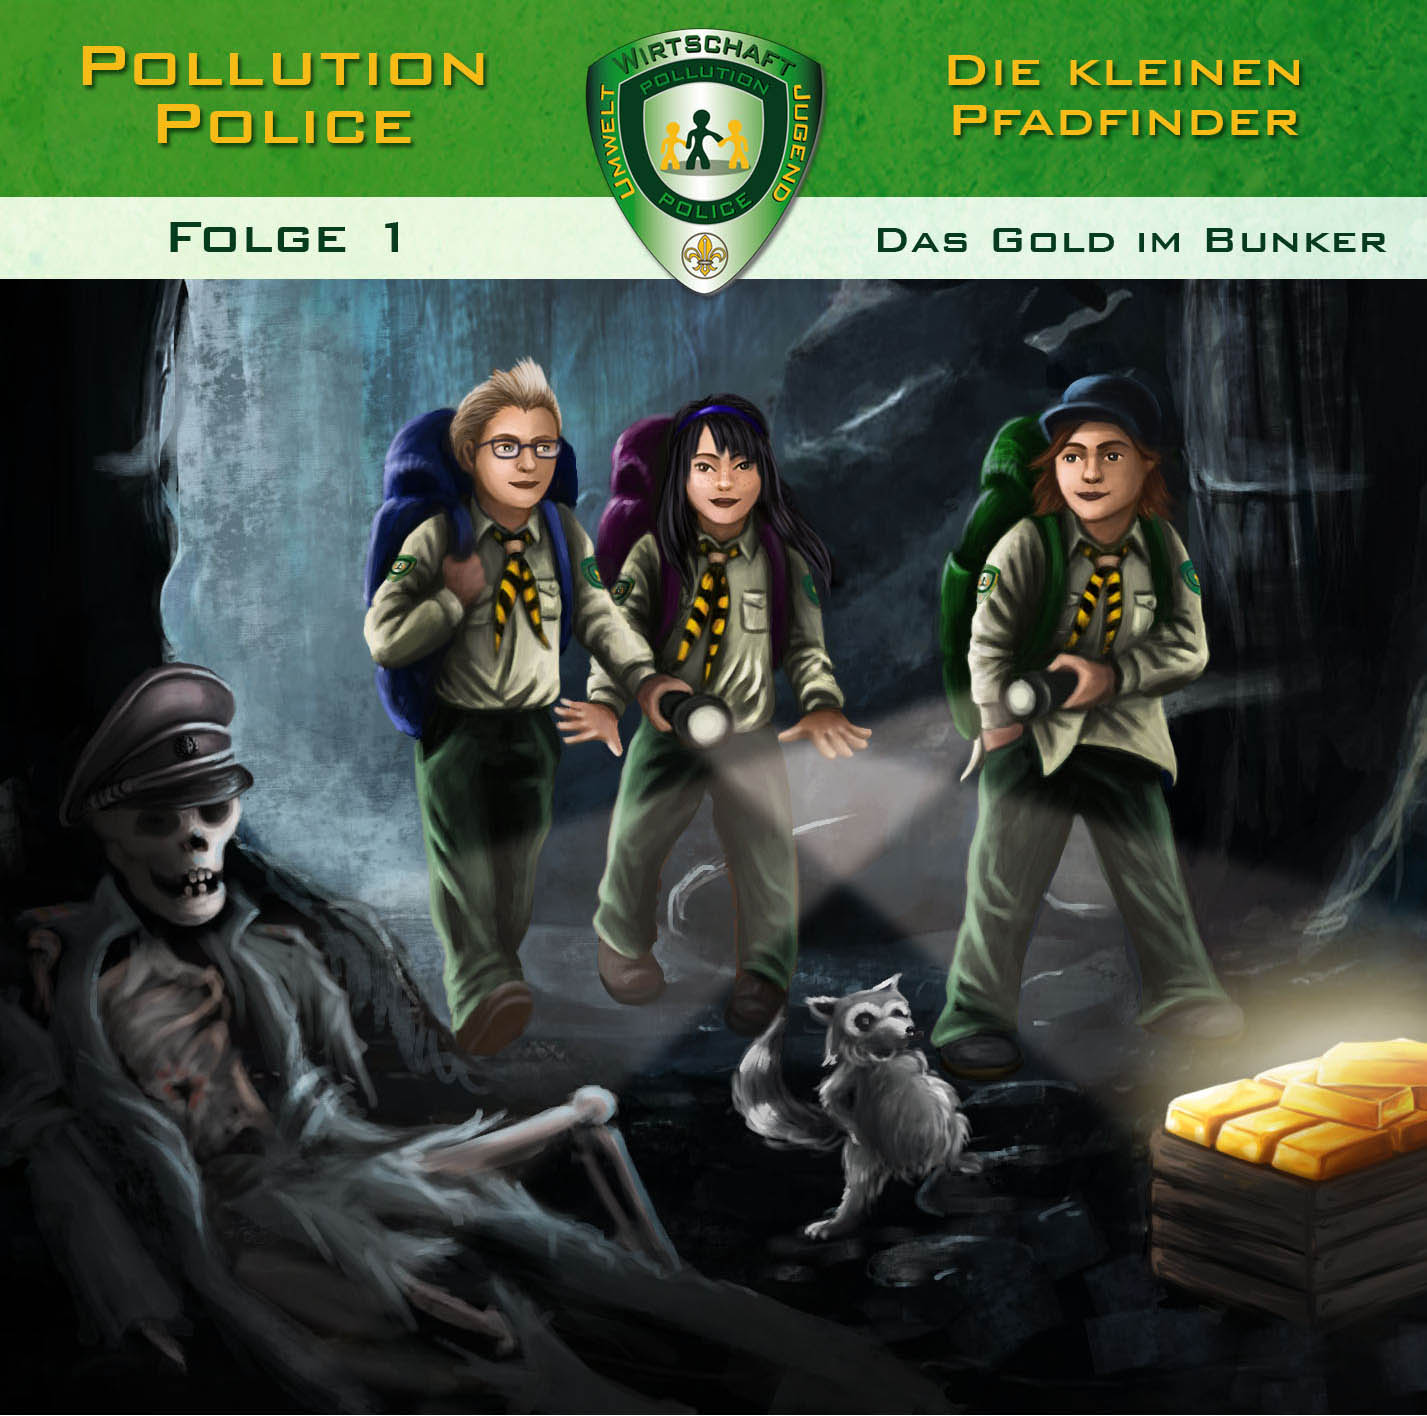 Monatsbericht der Pollution Police